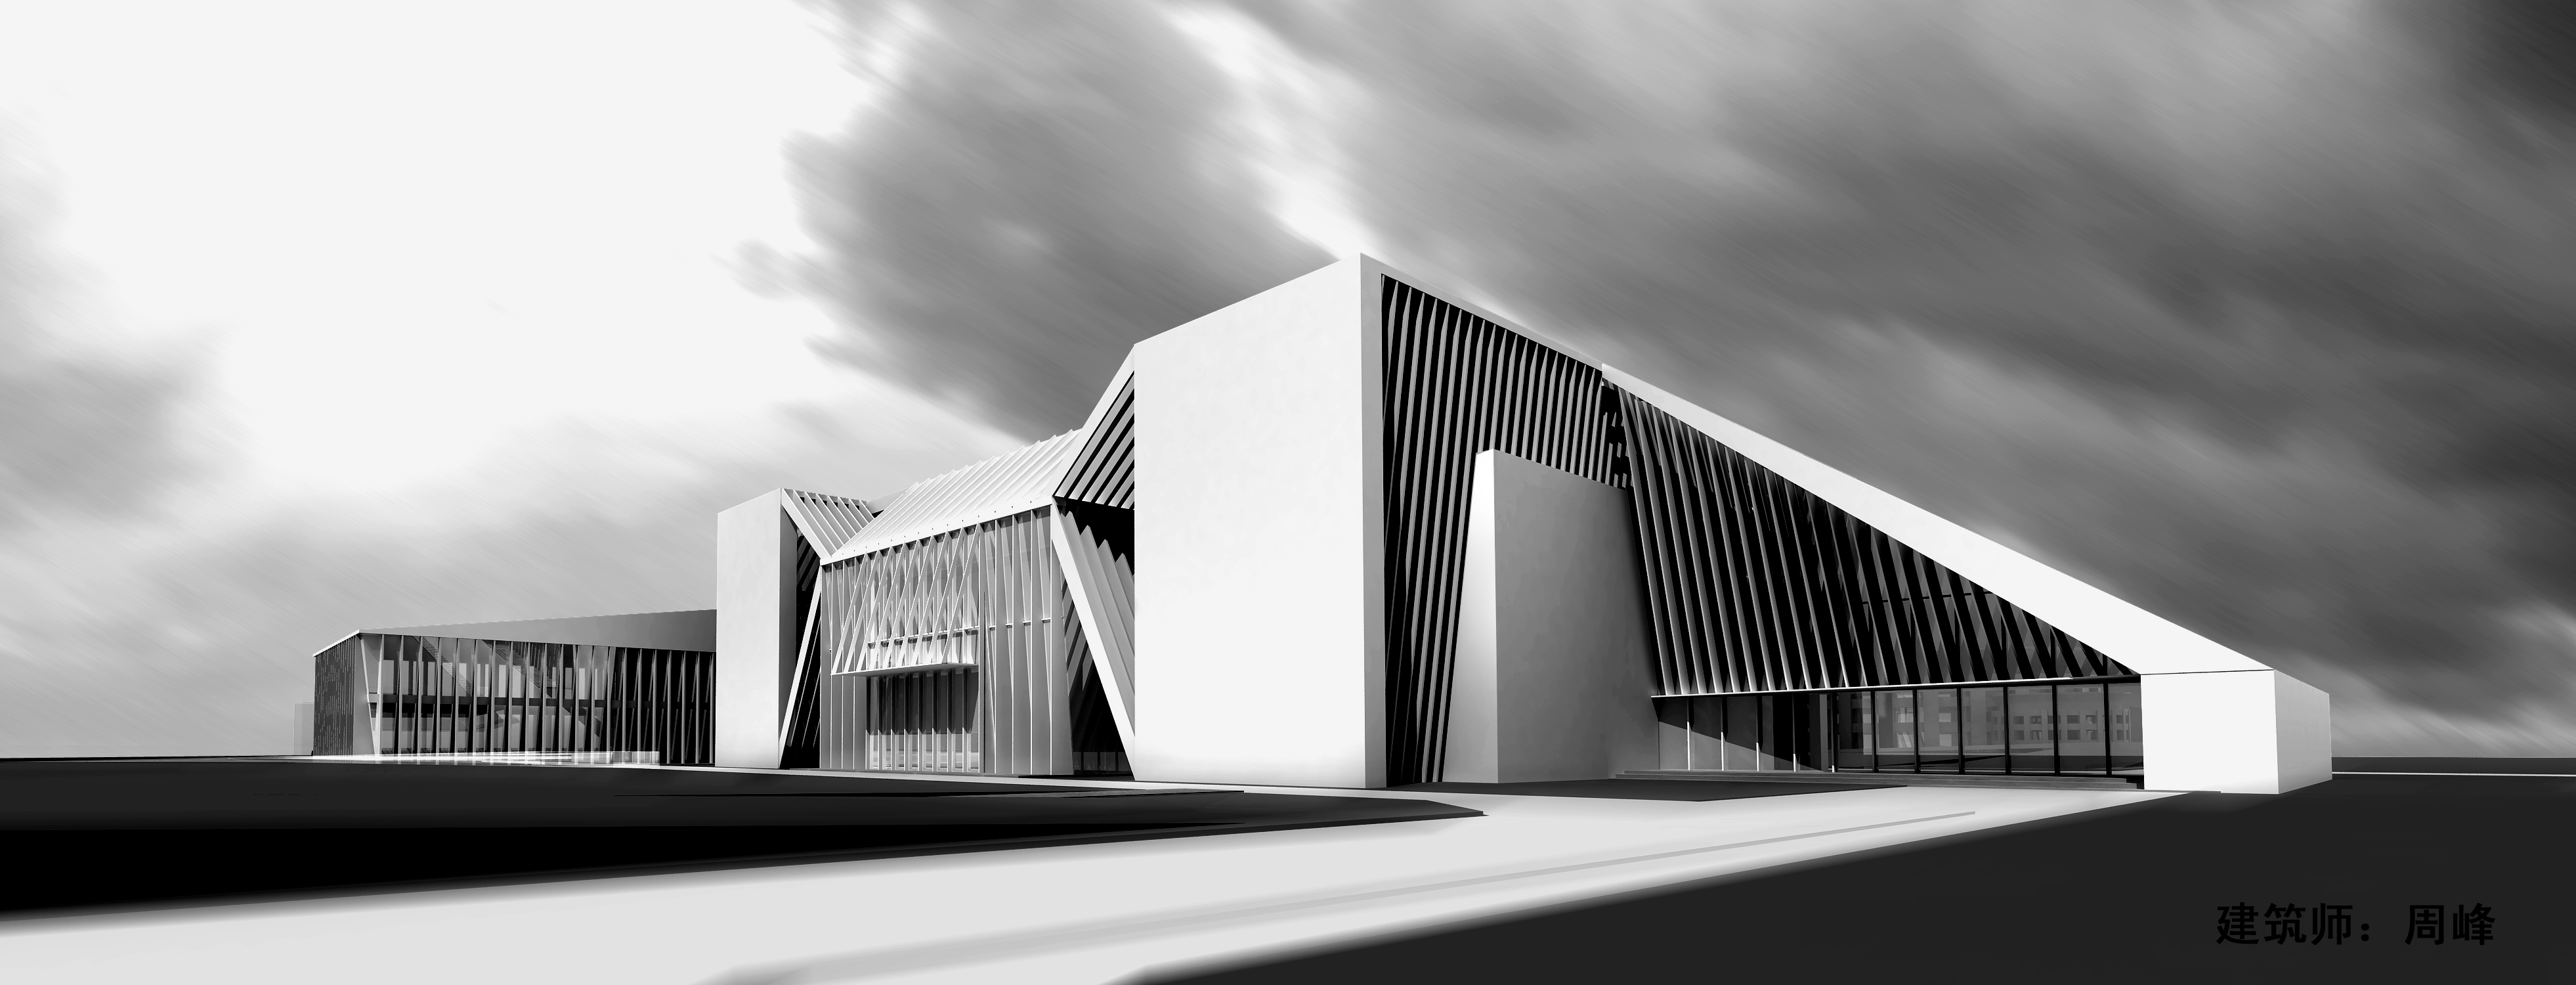 Ambitious plans for the new wall art museum in beijing for Museum designers